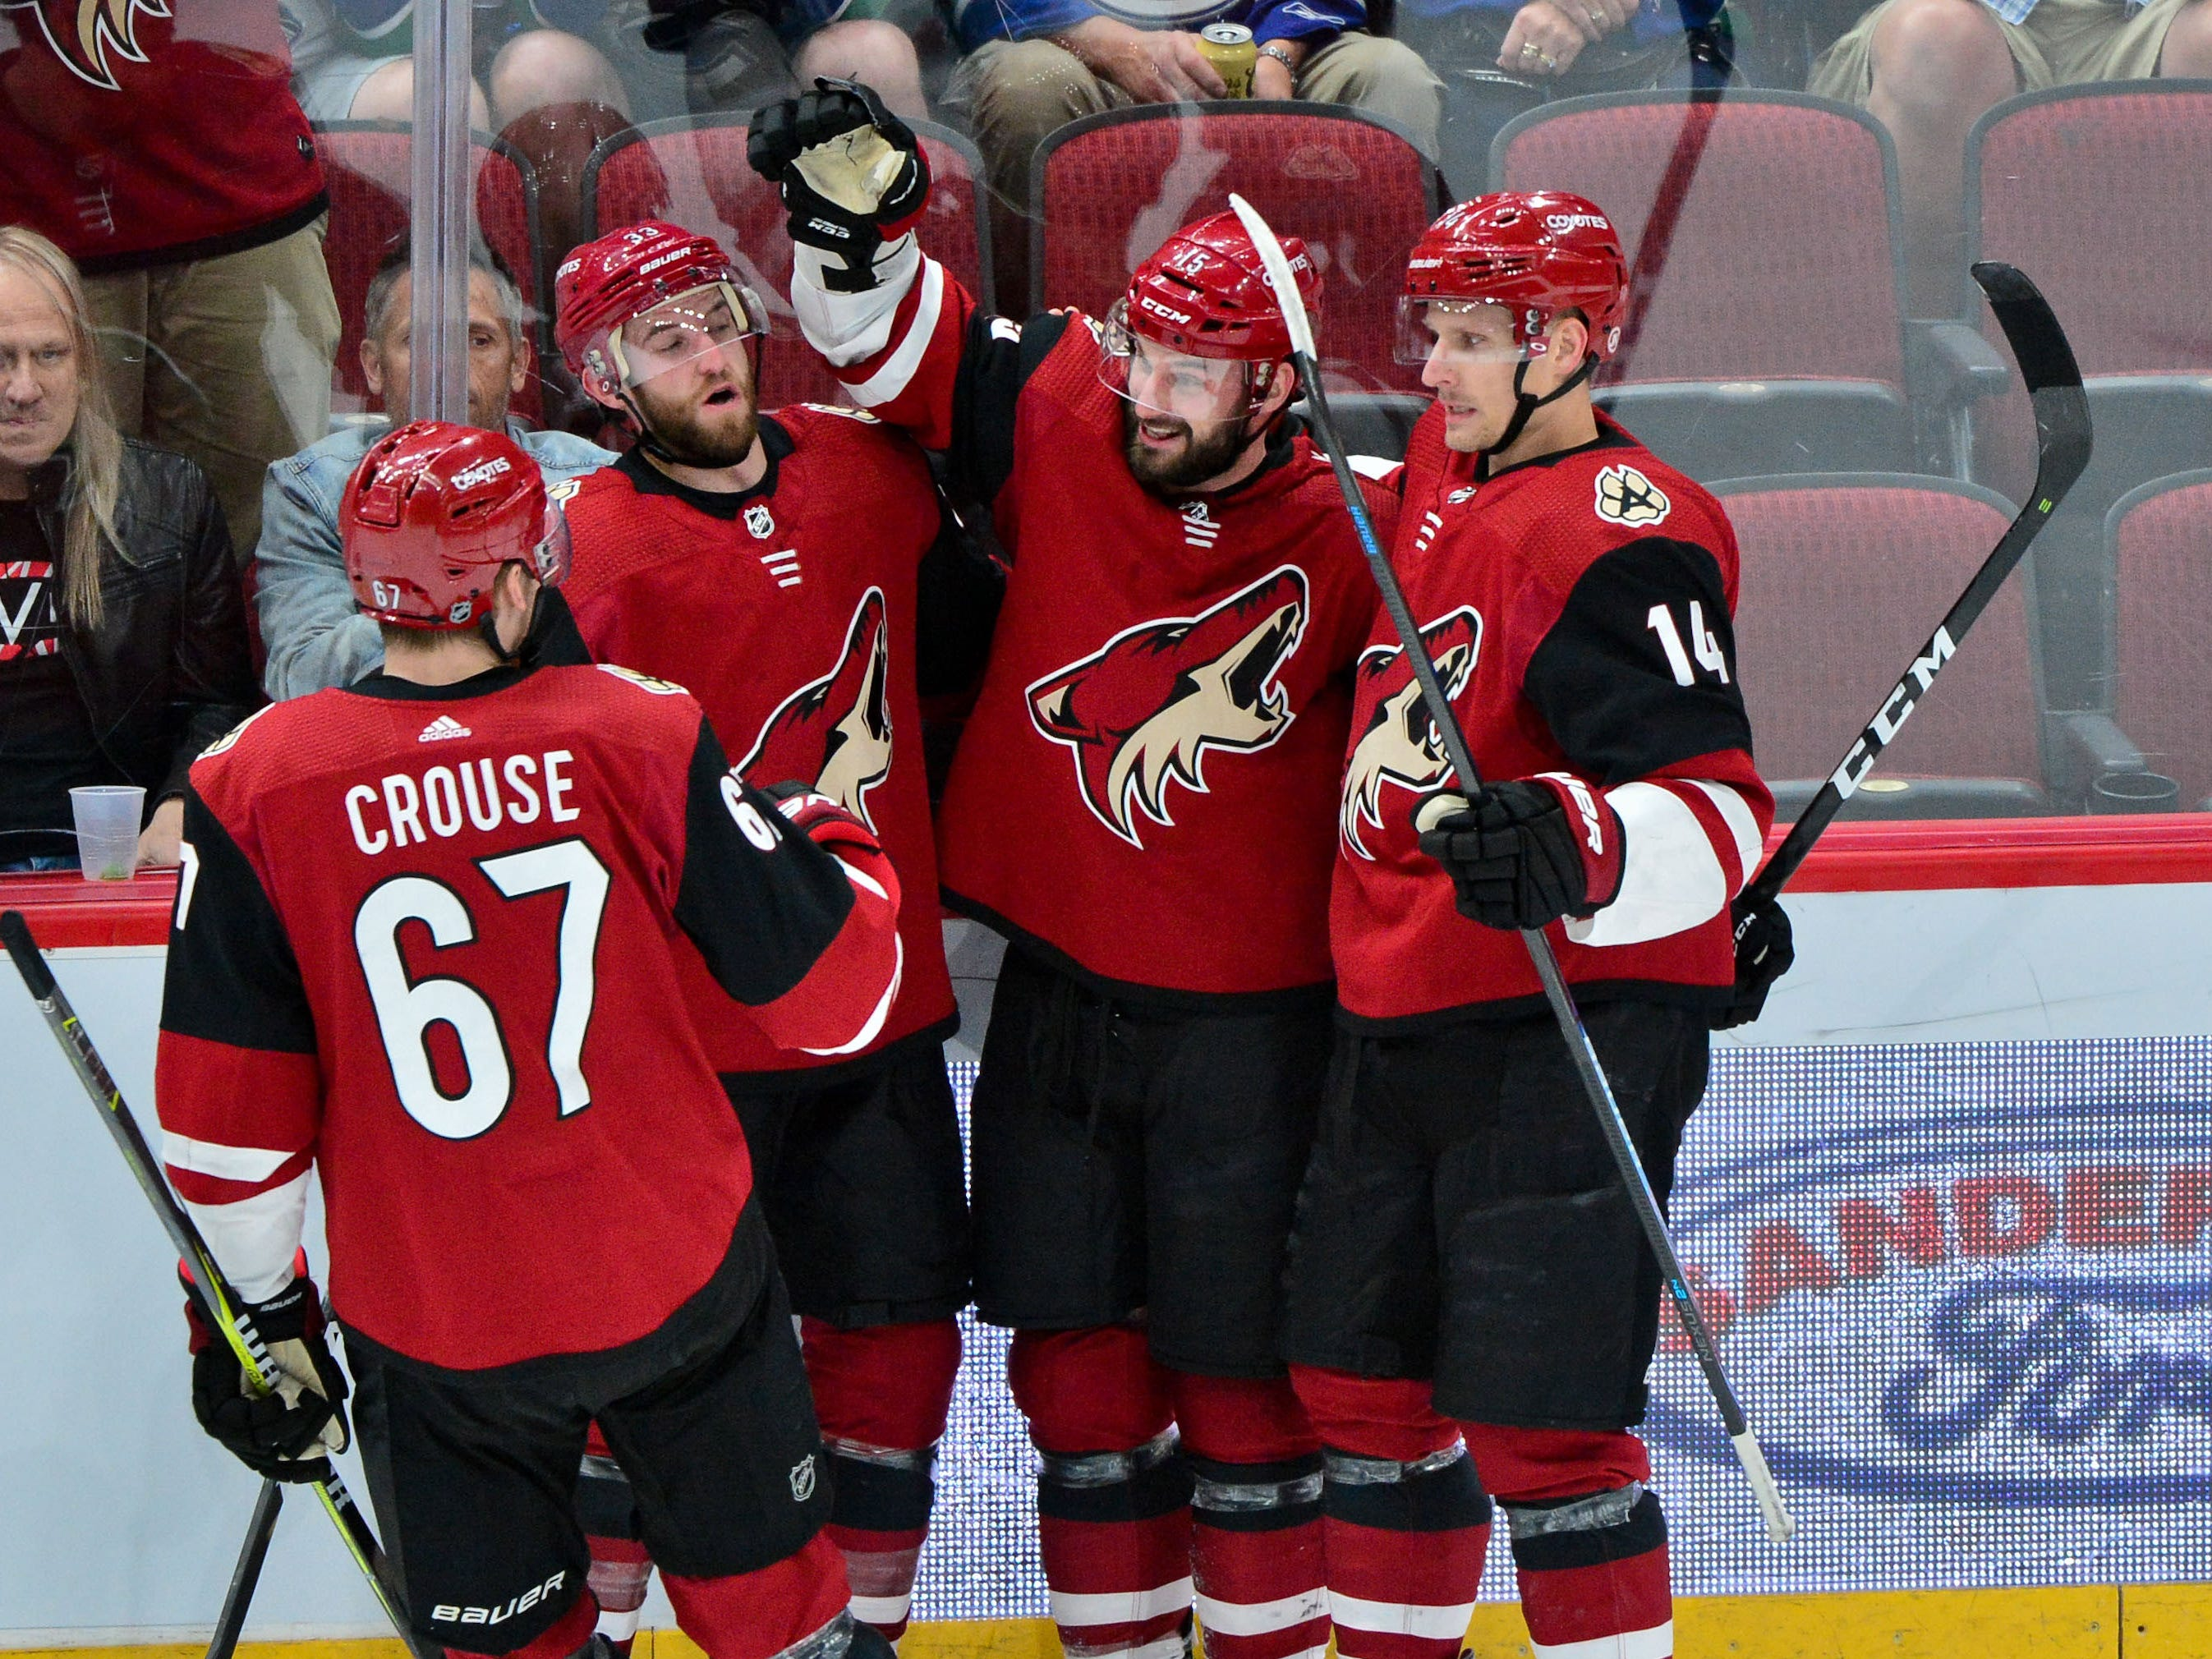 Feb 28, 2019; Glendale, AZ, USA; Arizona Coyotes center Brad Richardson (15) celebrates with defenseman Alex Goligoski (33), left wing Lawson Crouse (67) and right wing Richard Panik (14) after scoring a goal in the first period against the Vancouver Canucks at Gila River Arena.